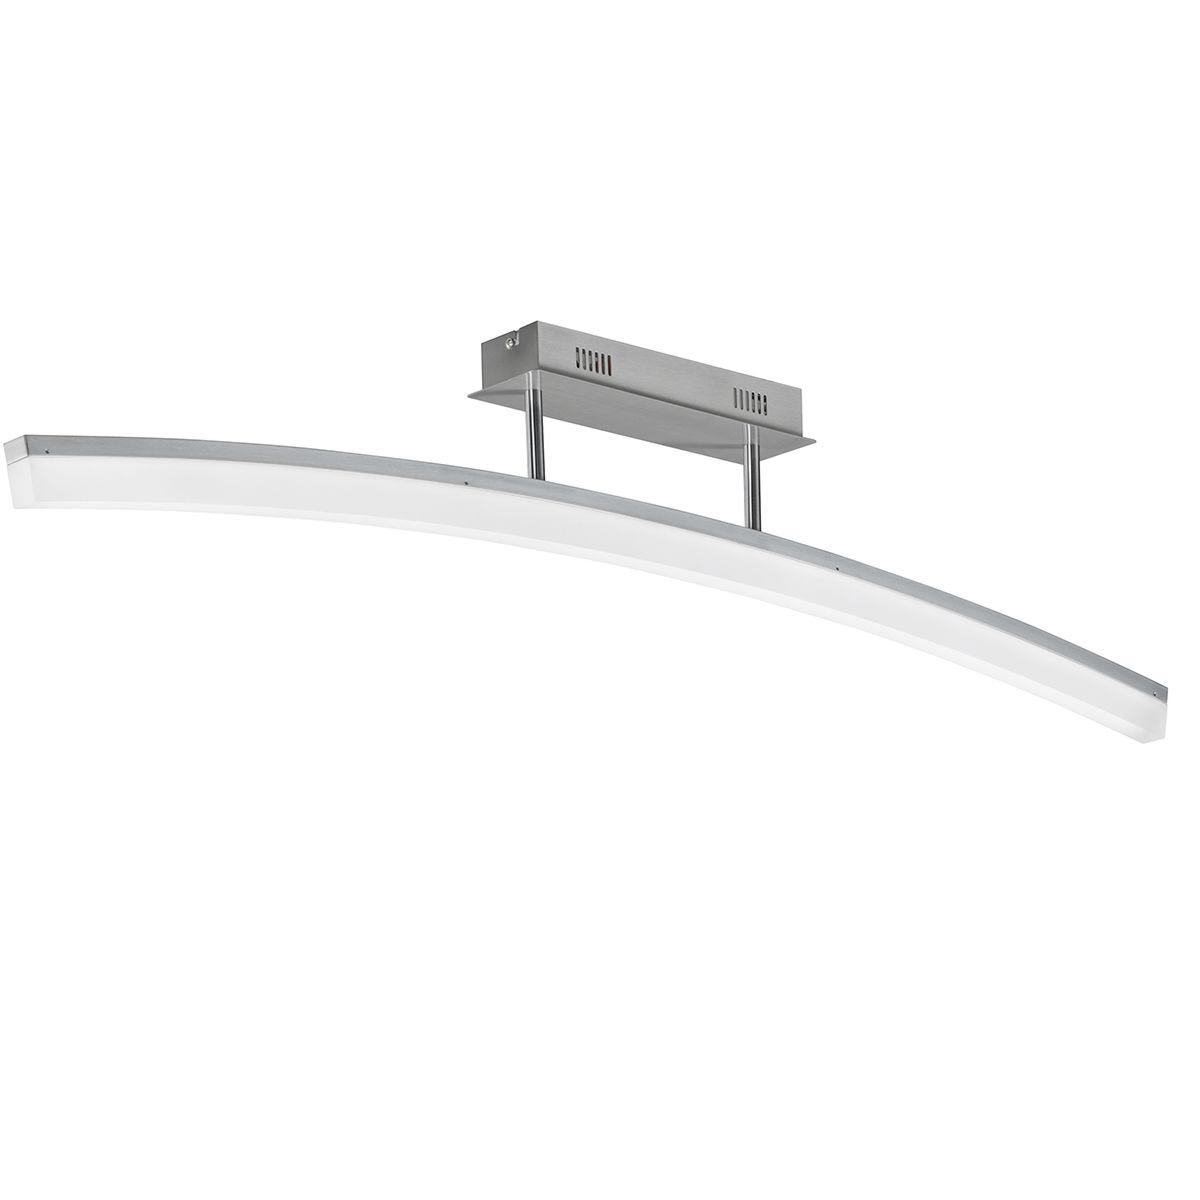 Action Ferrol Ceiling Lamp - Nickel Matt Finished with LED Bulb